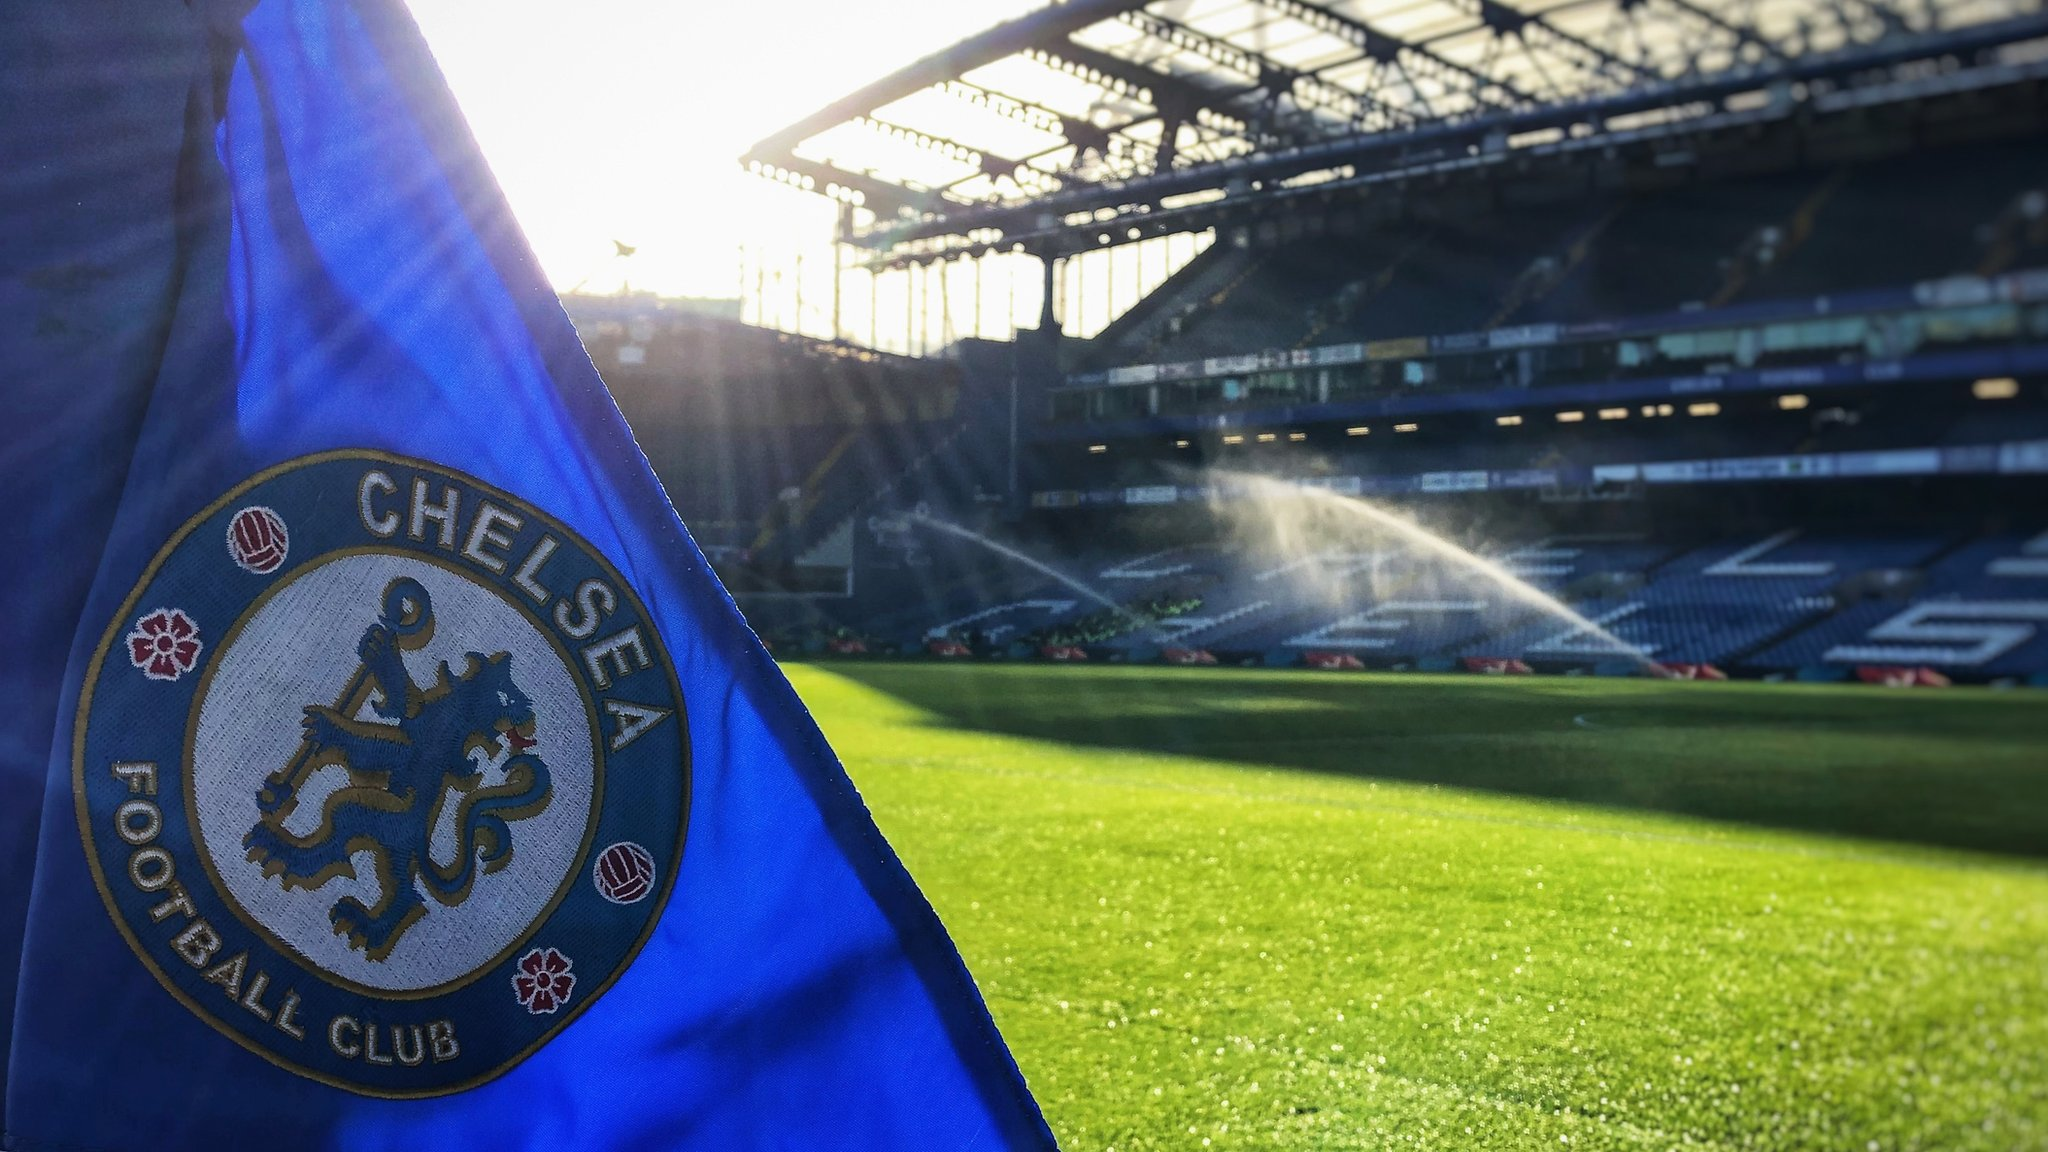 Chelsea: Premier League club investigate racism allegations